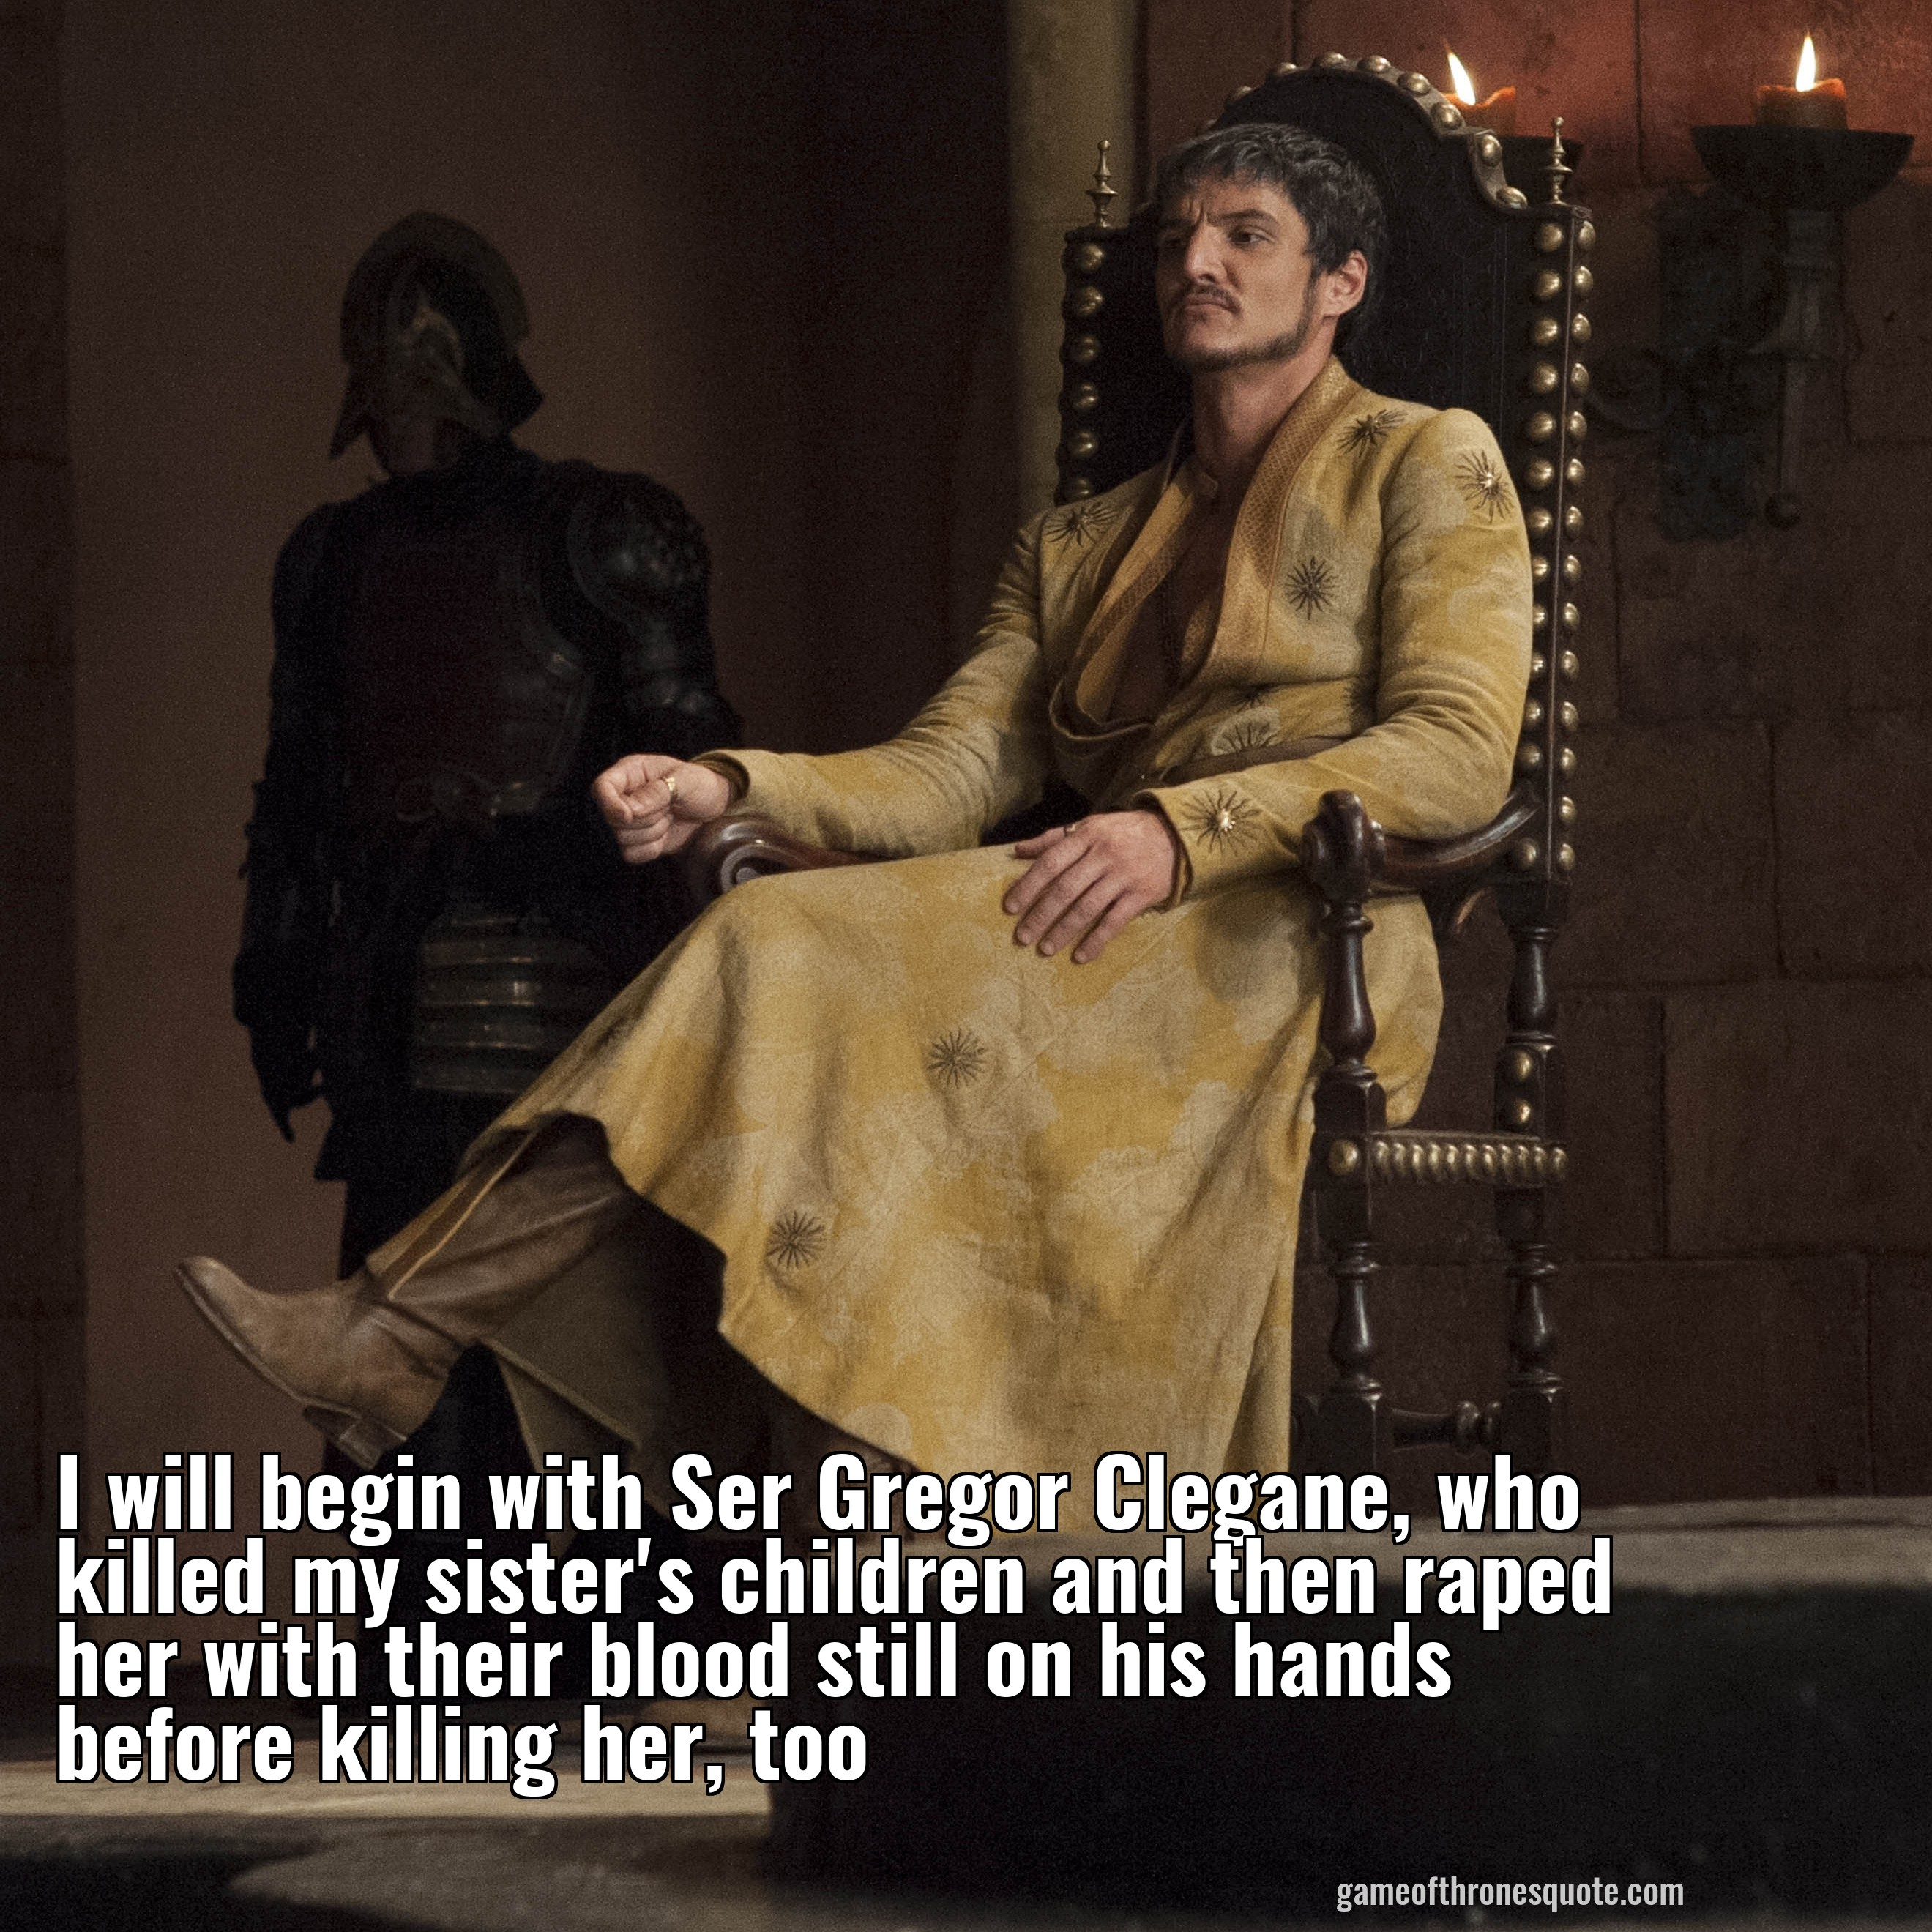 I will begin with Ser Gregor Clegane, who killed my sister's children and then killed her with their blood still on his hands before killing her, too